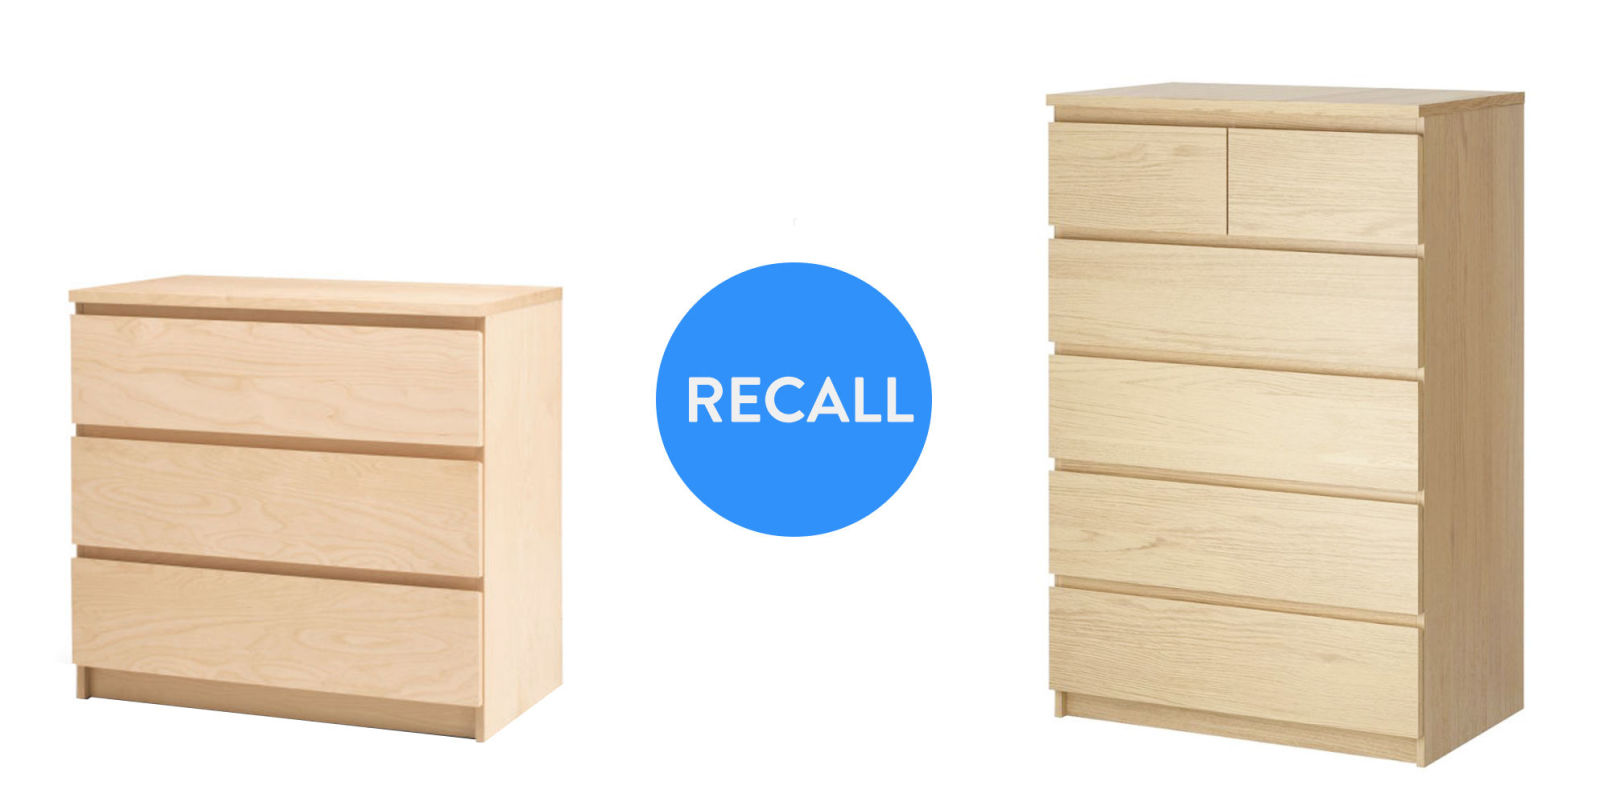 ikea recalls malm dresser drawers due to three toddler deaths